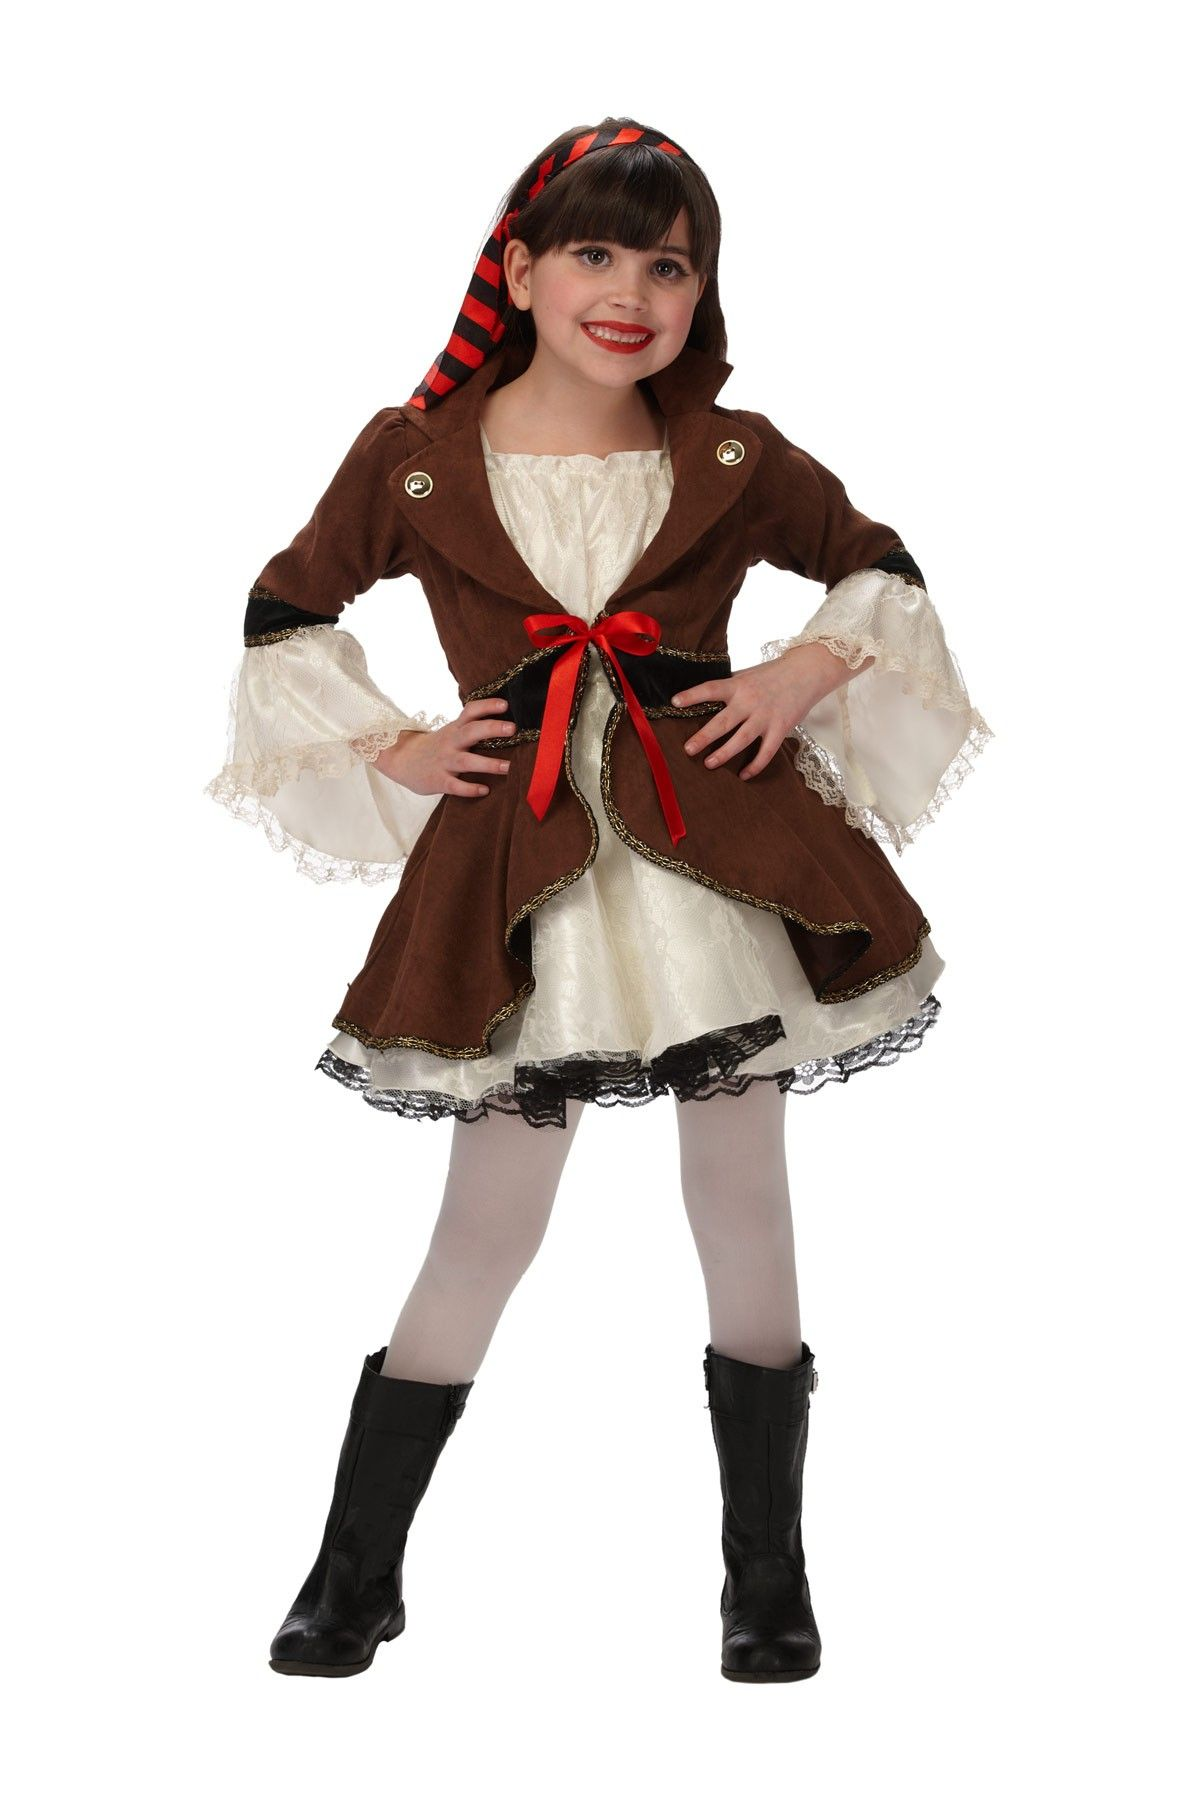 143343ecd31 Pirate Princess Dress on HauteLook   Clothes for baby girls   Pirate ...